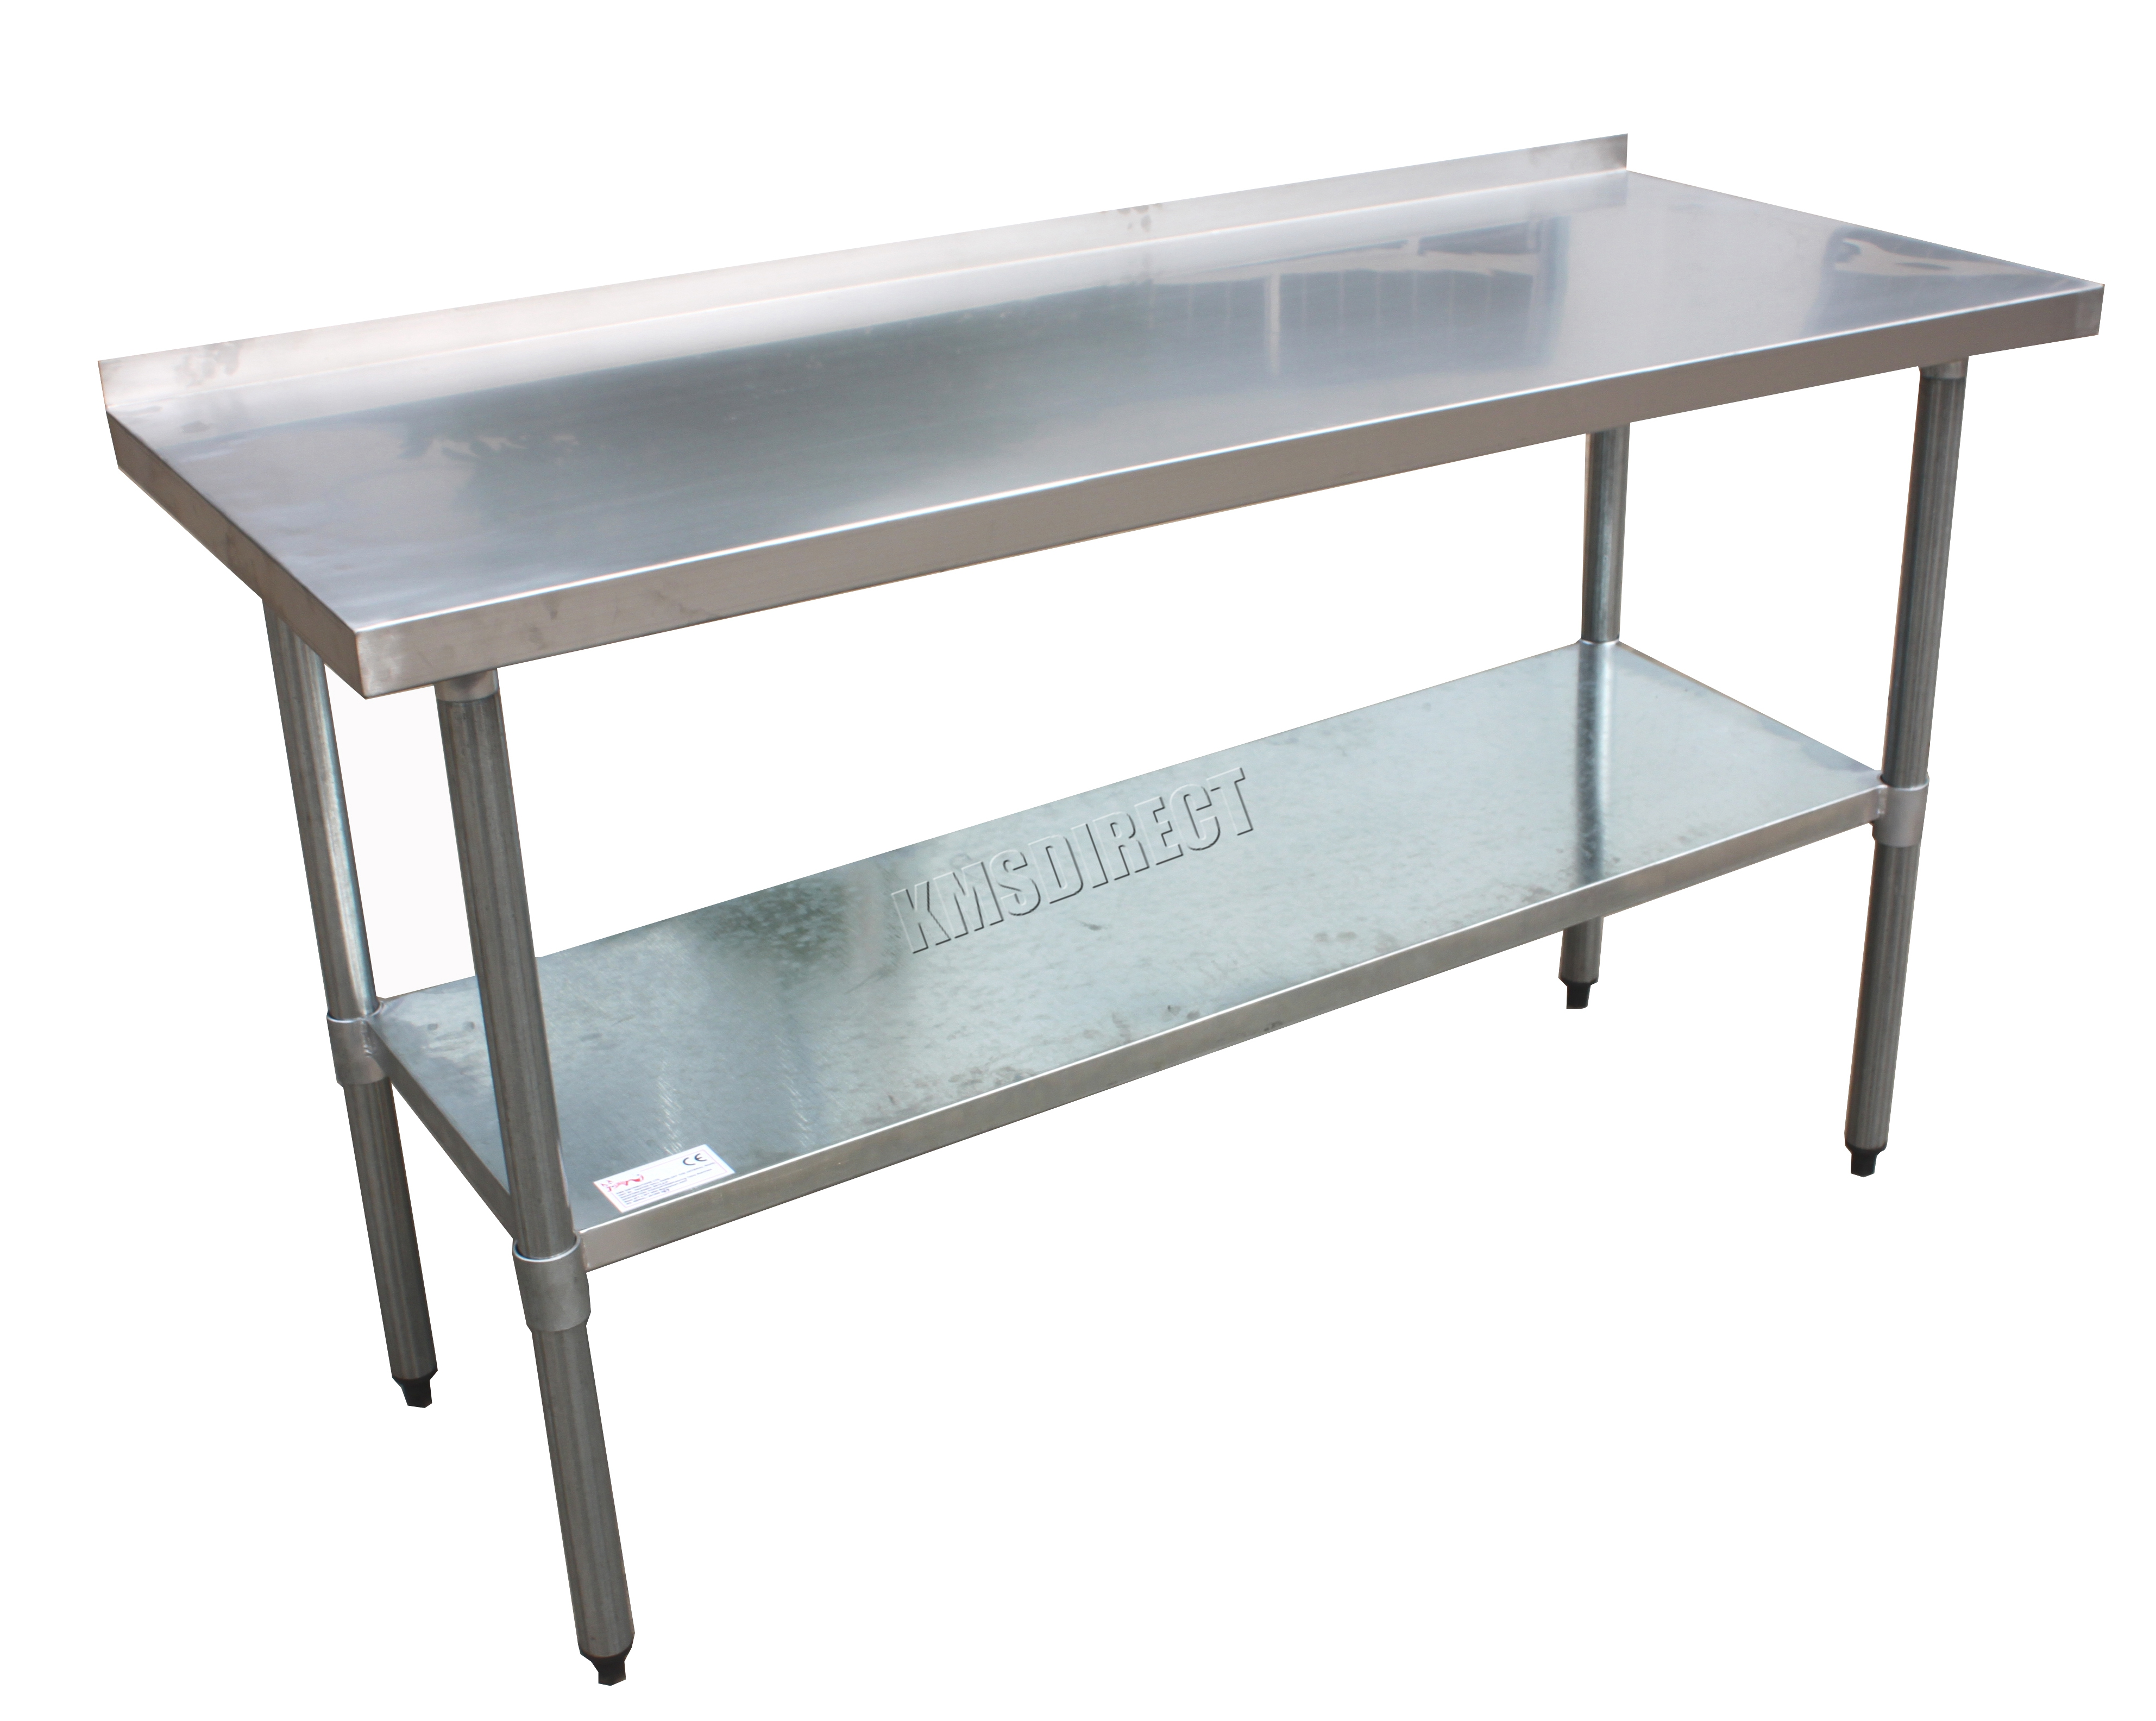 Work Table For Kitchen Foxhunter Stainless Steel Catering Table Backsplash Work Bench